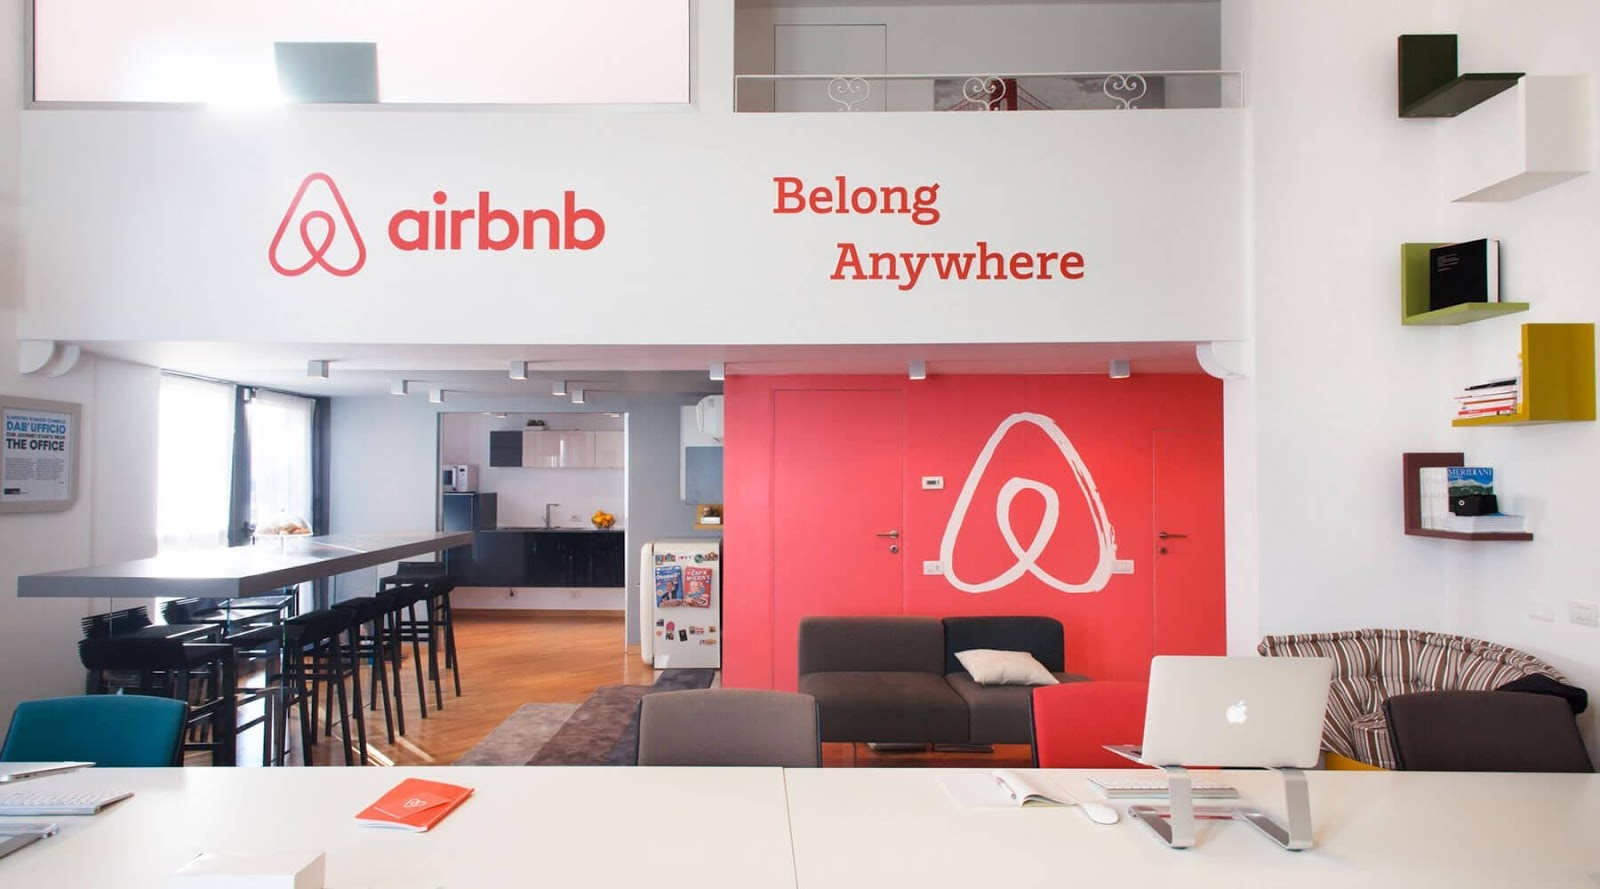 Airbnb's startup brand